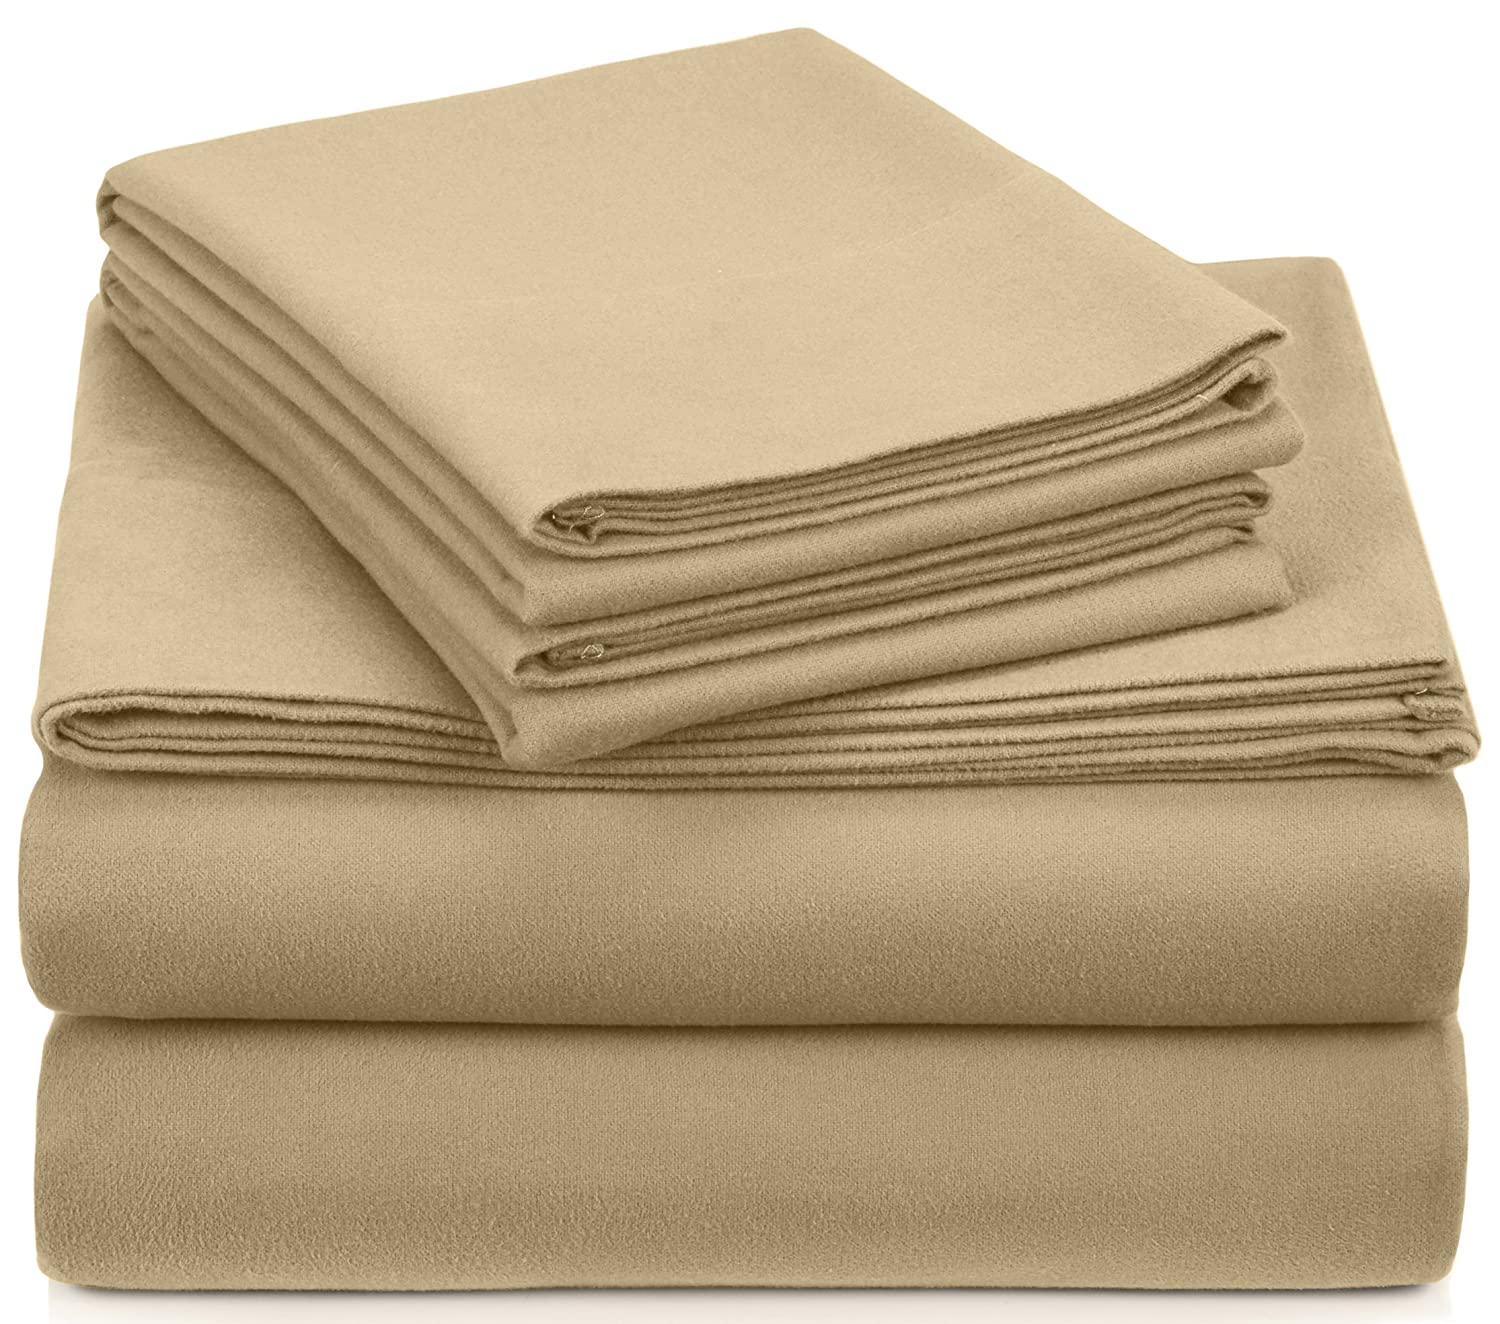 Top 10 Best Flannel Sheets